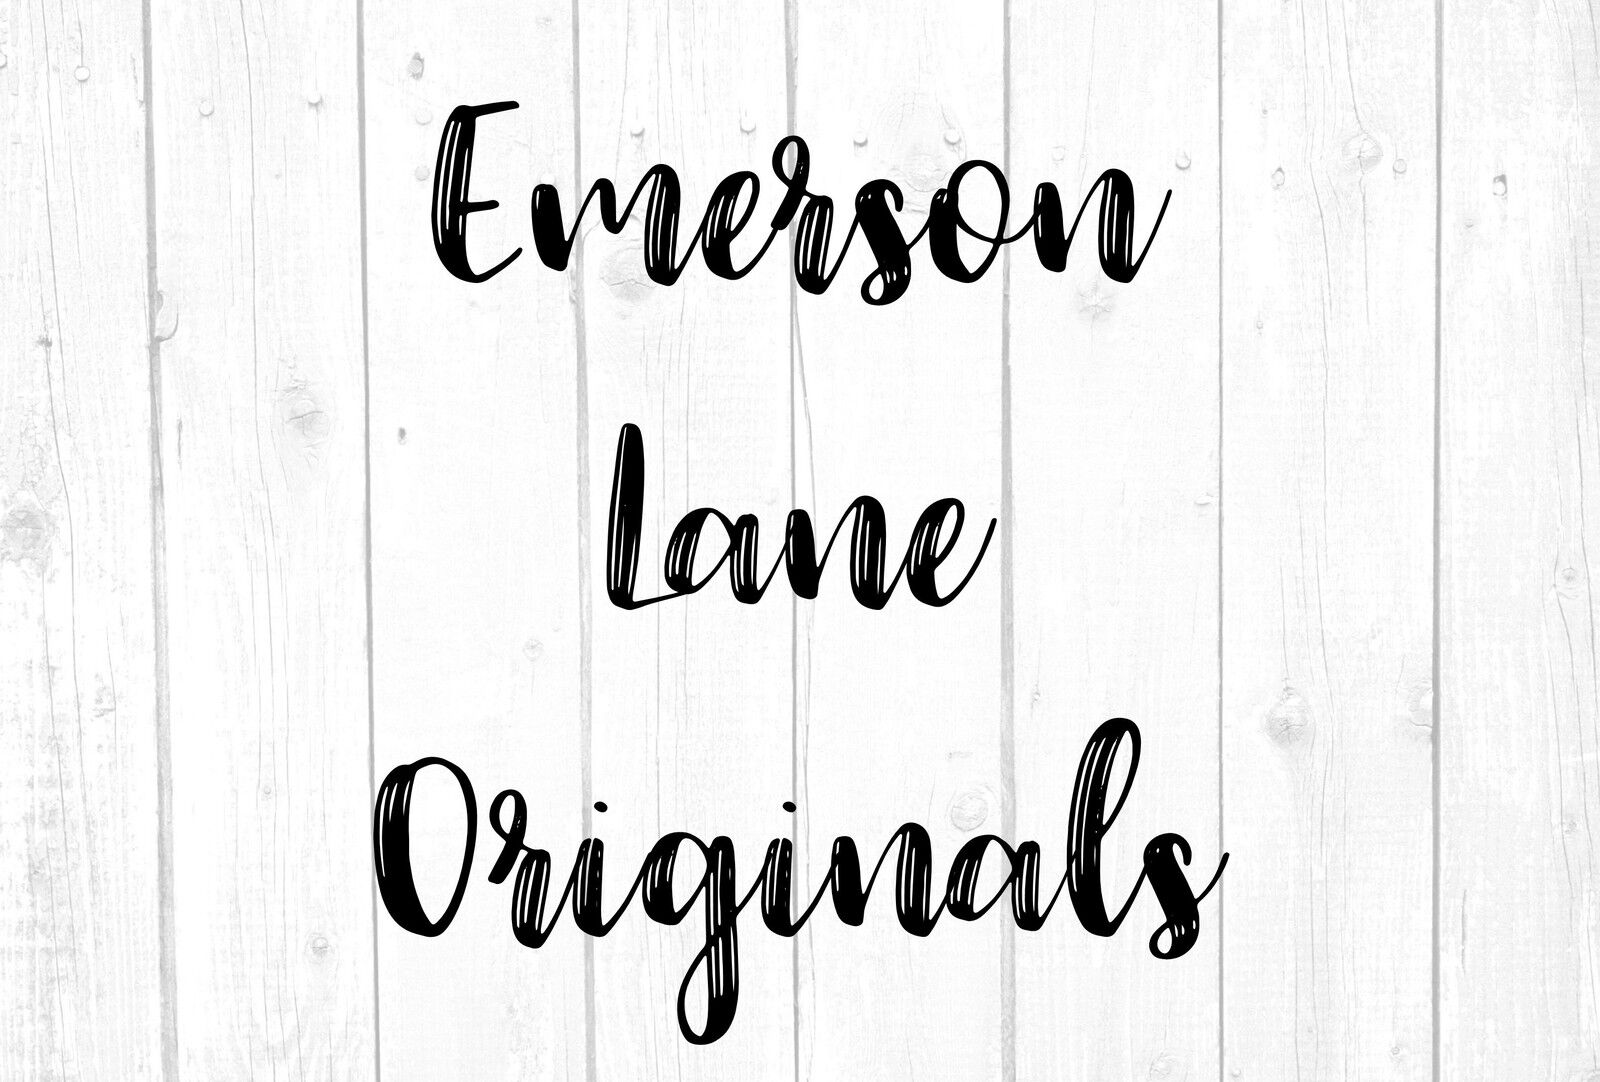 Emerson Lane Originals